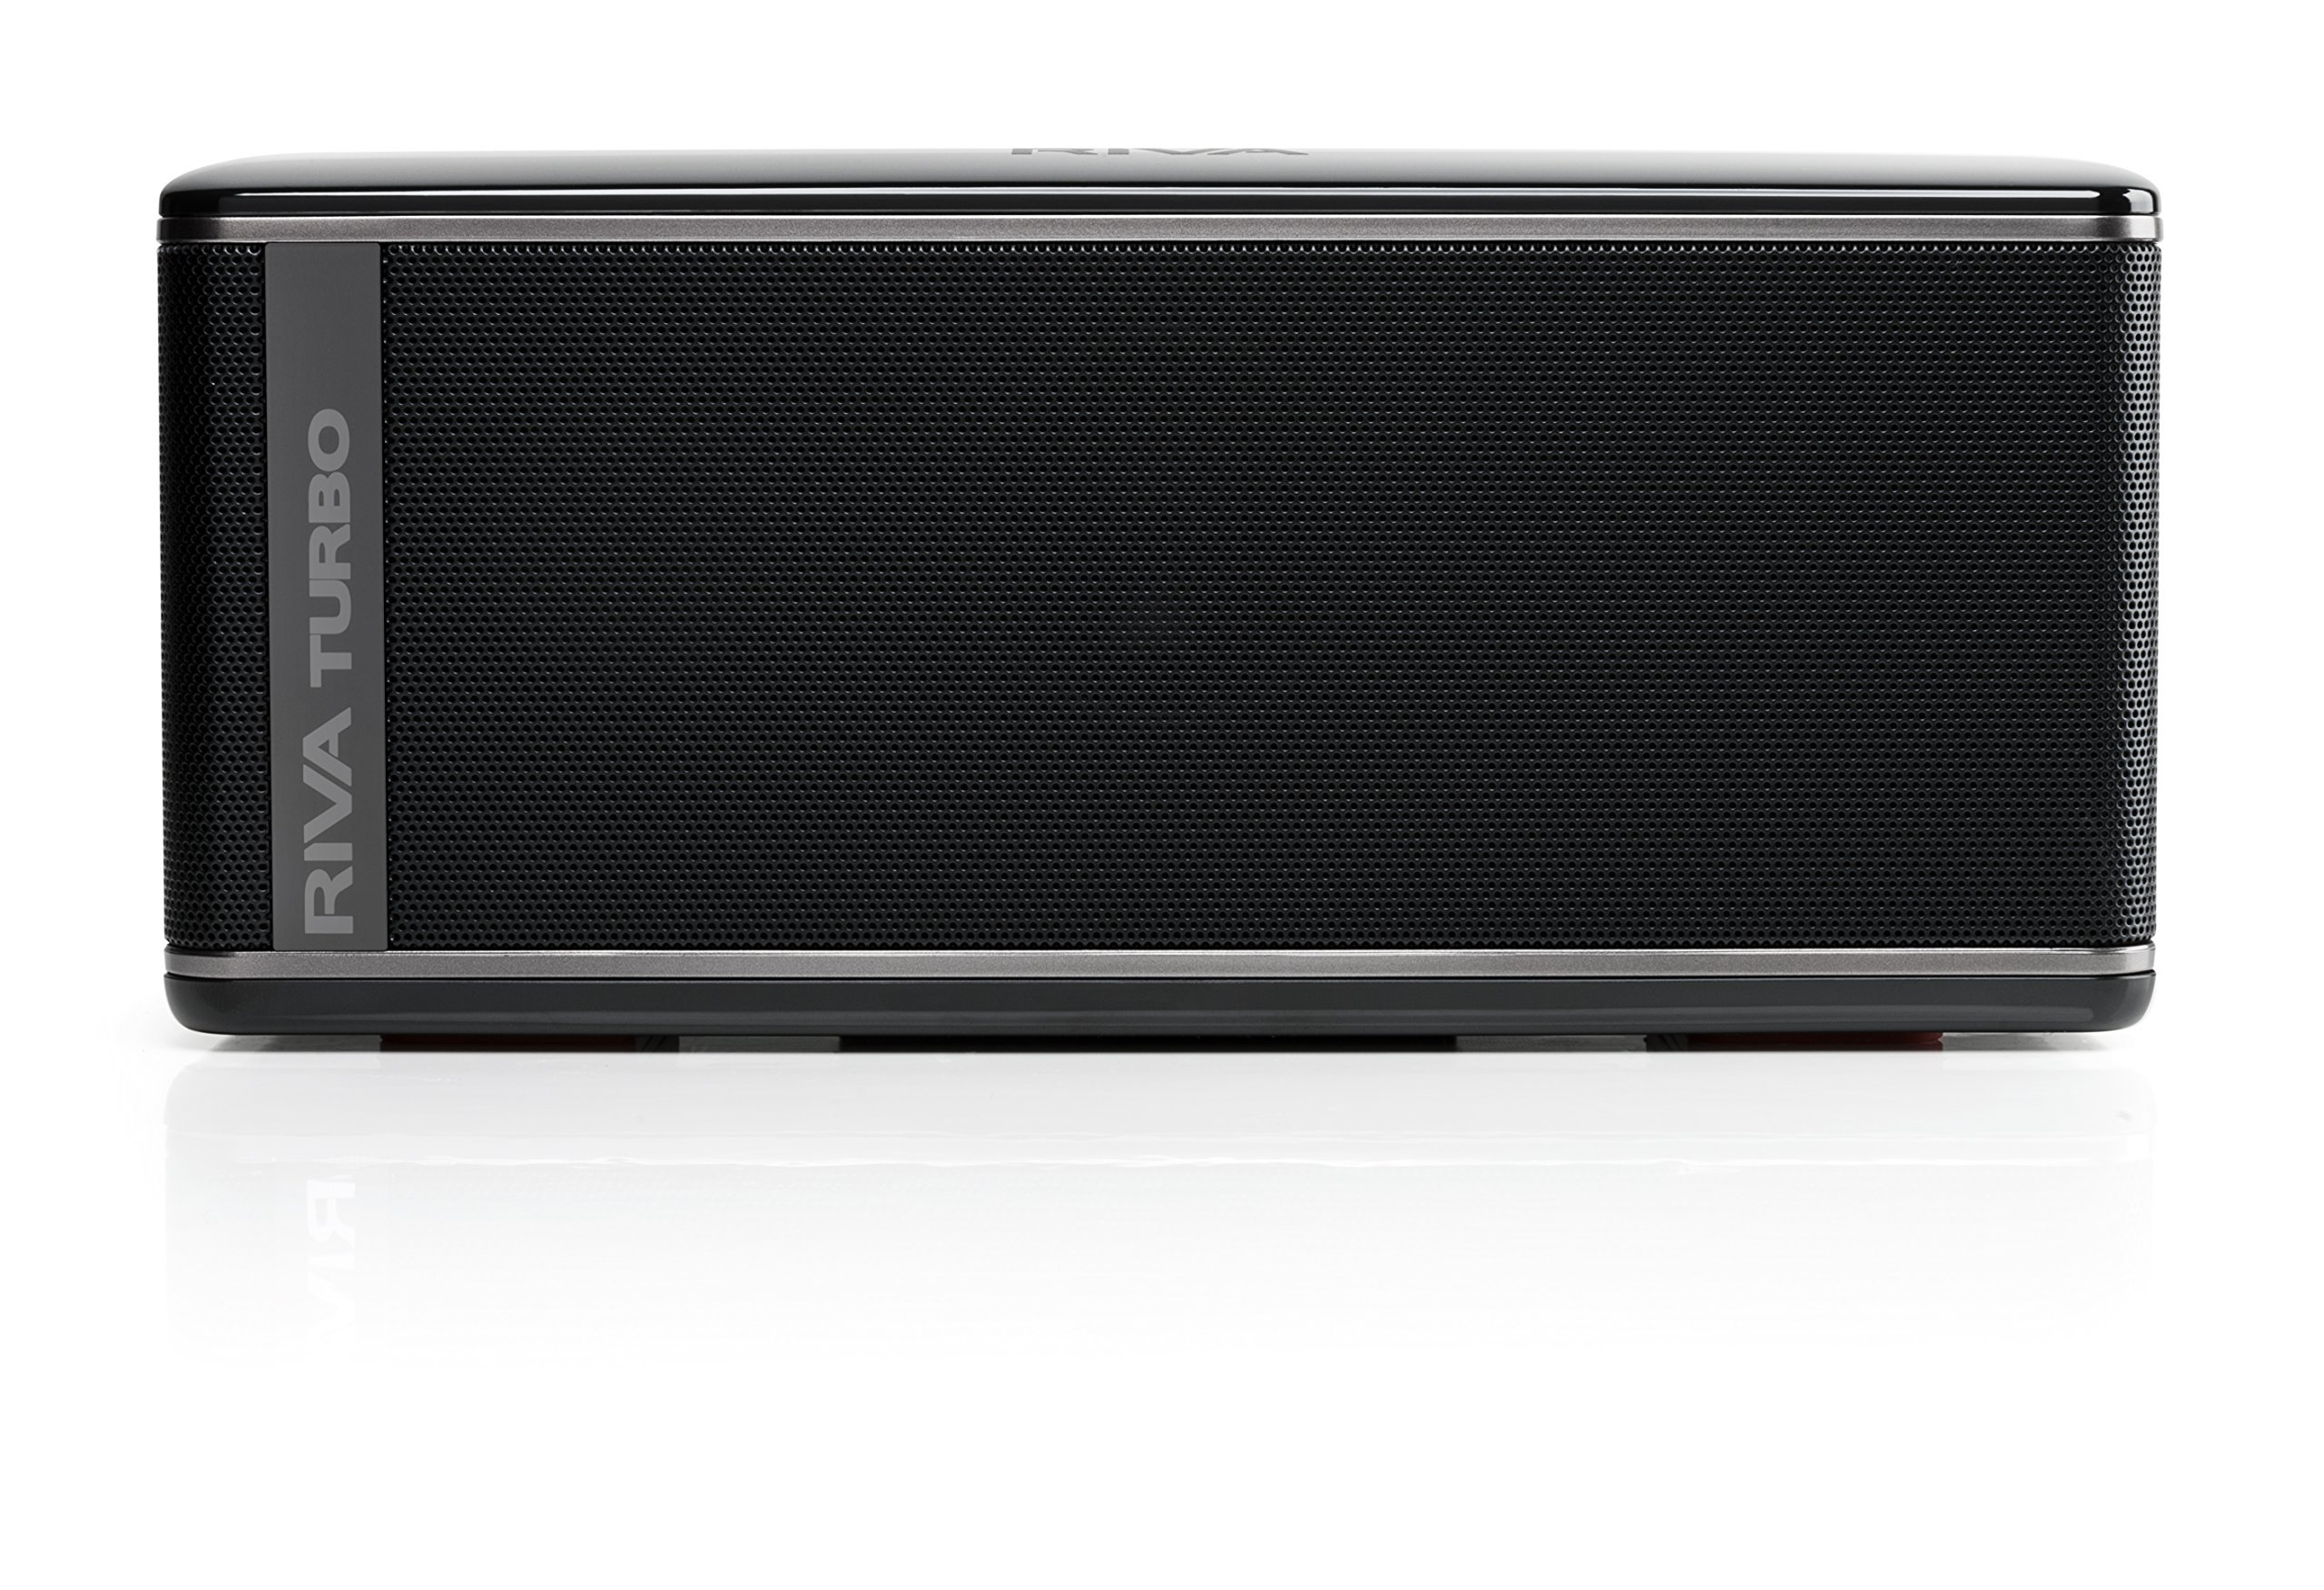 RIVA TURBO X RTX01B (Non-charging only works with power cord!!) Premium Wireless Bluetooth Speaker (Black) (Renewed) by RIVA